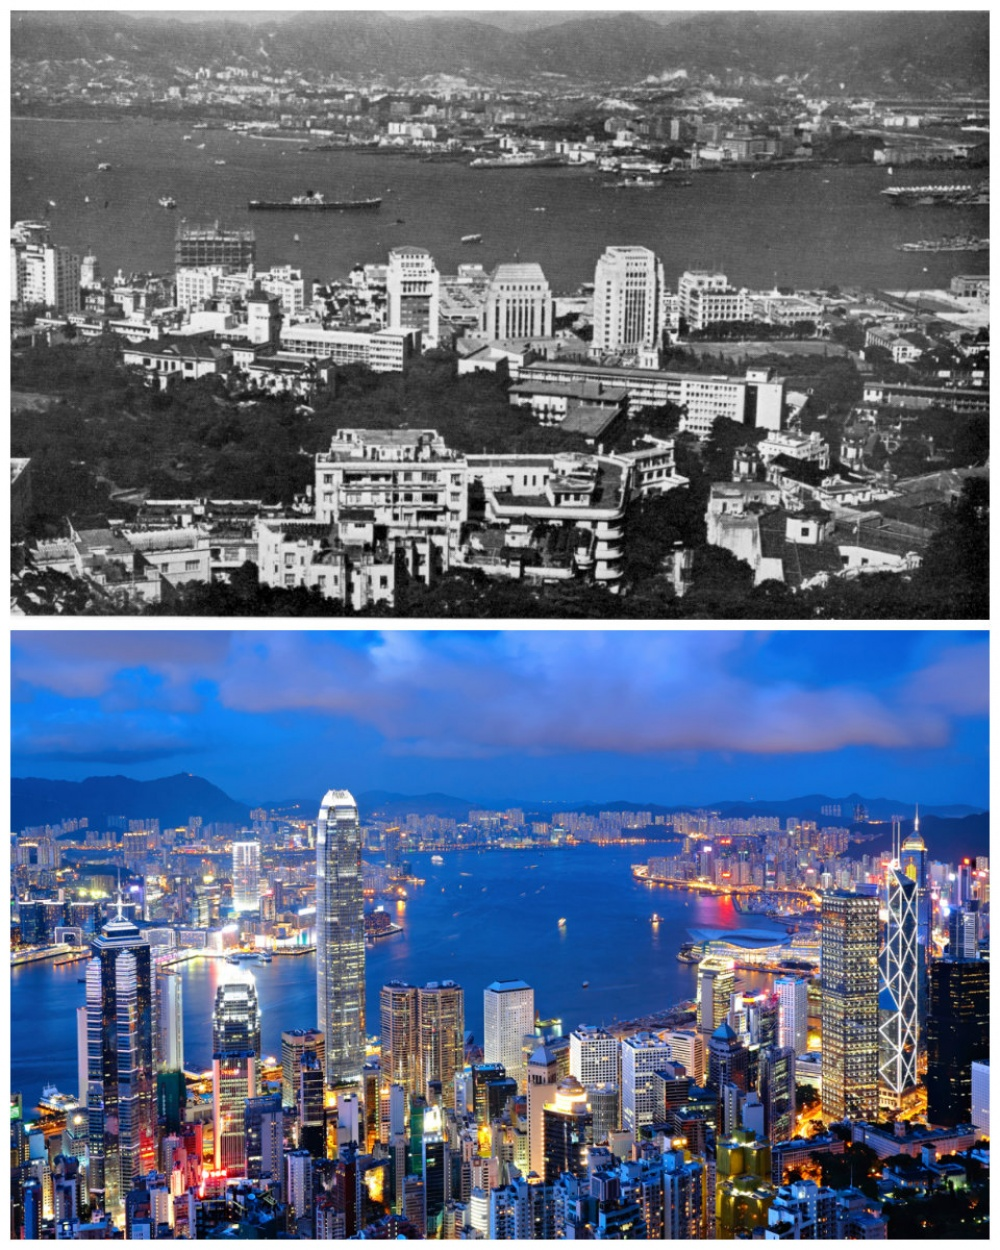 Hong Kong: The 1960s vs. the present